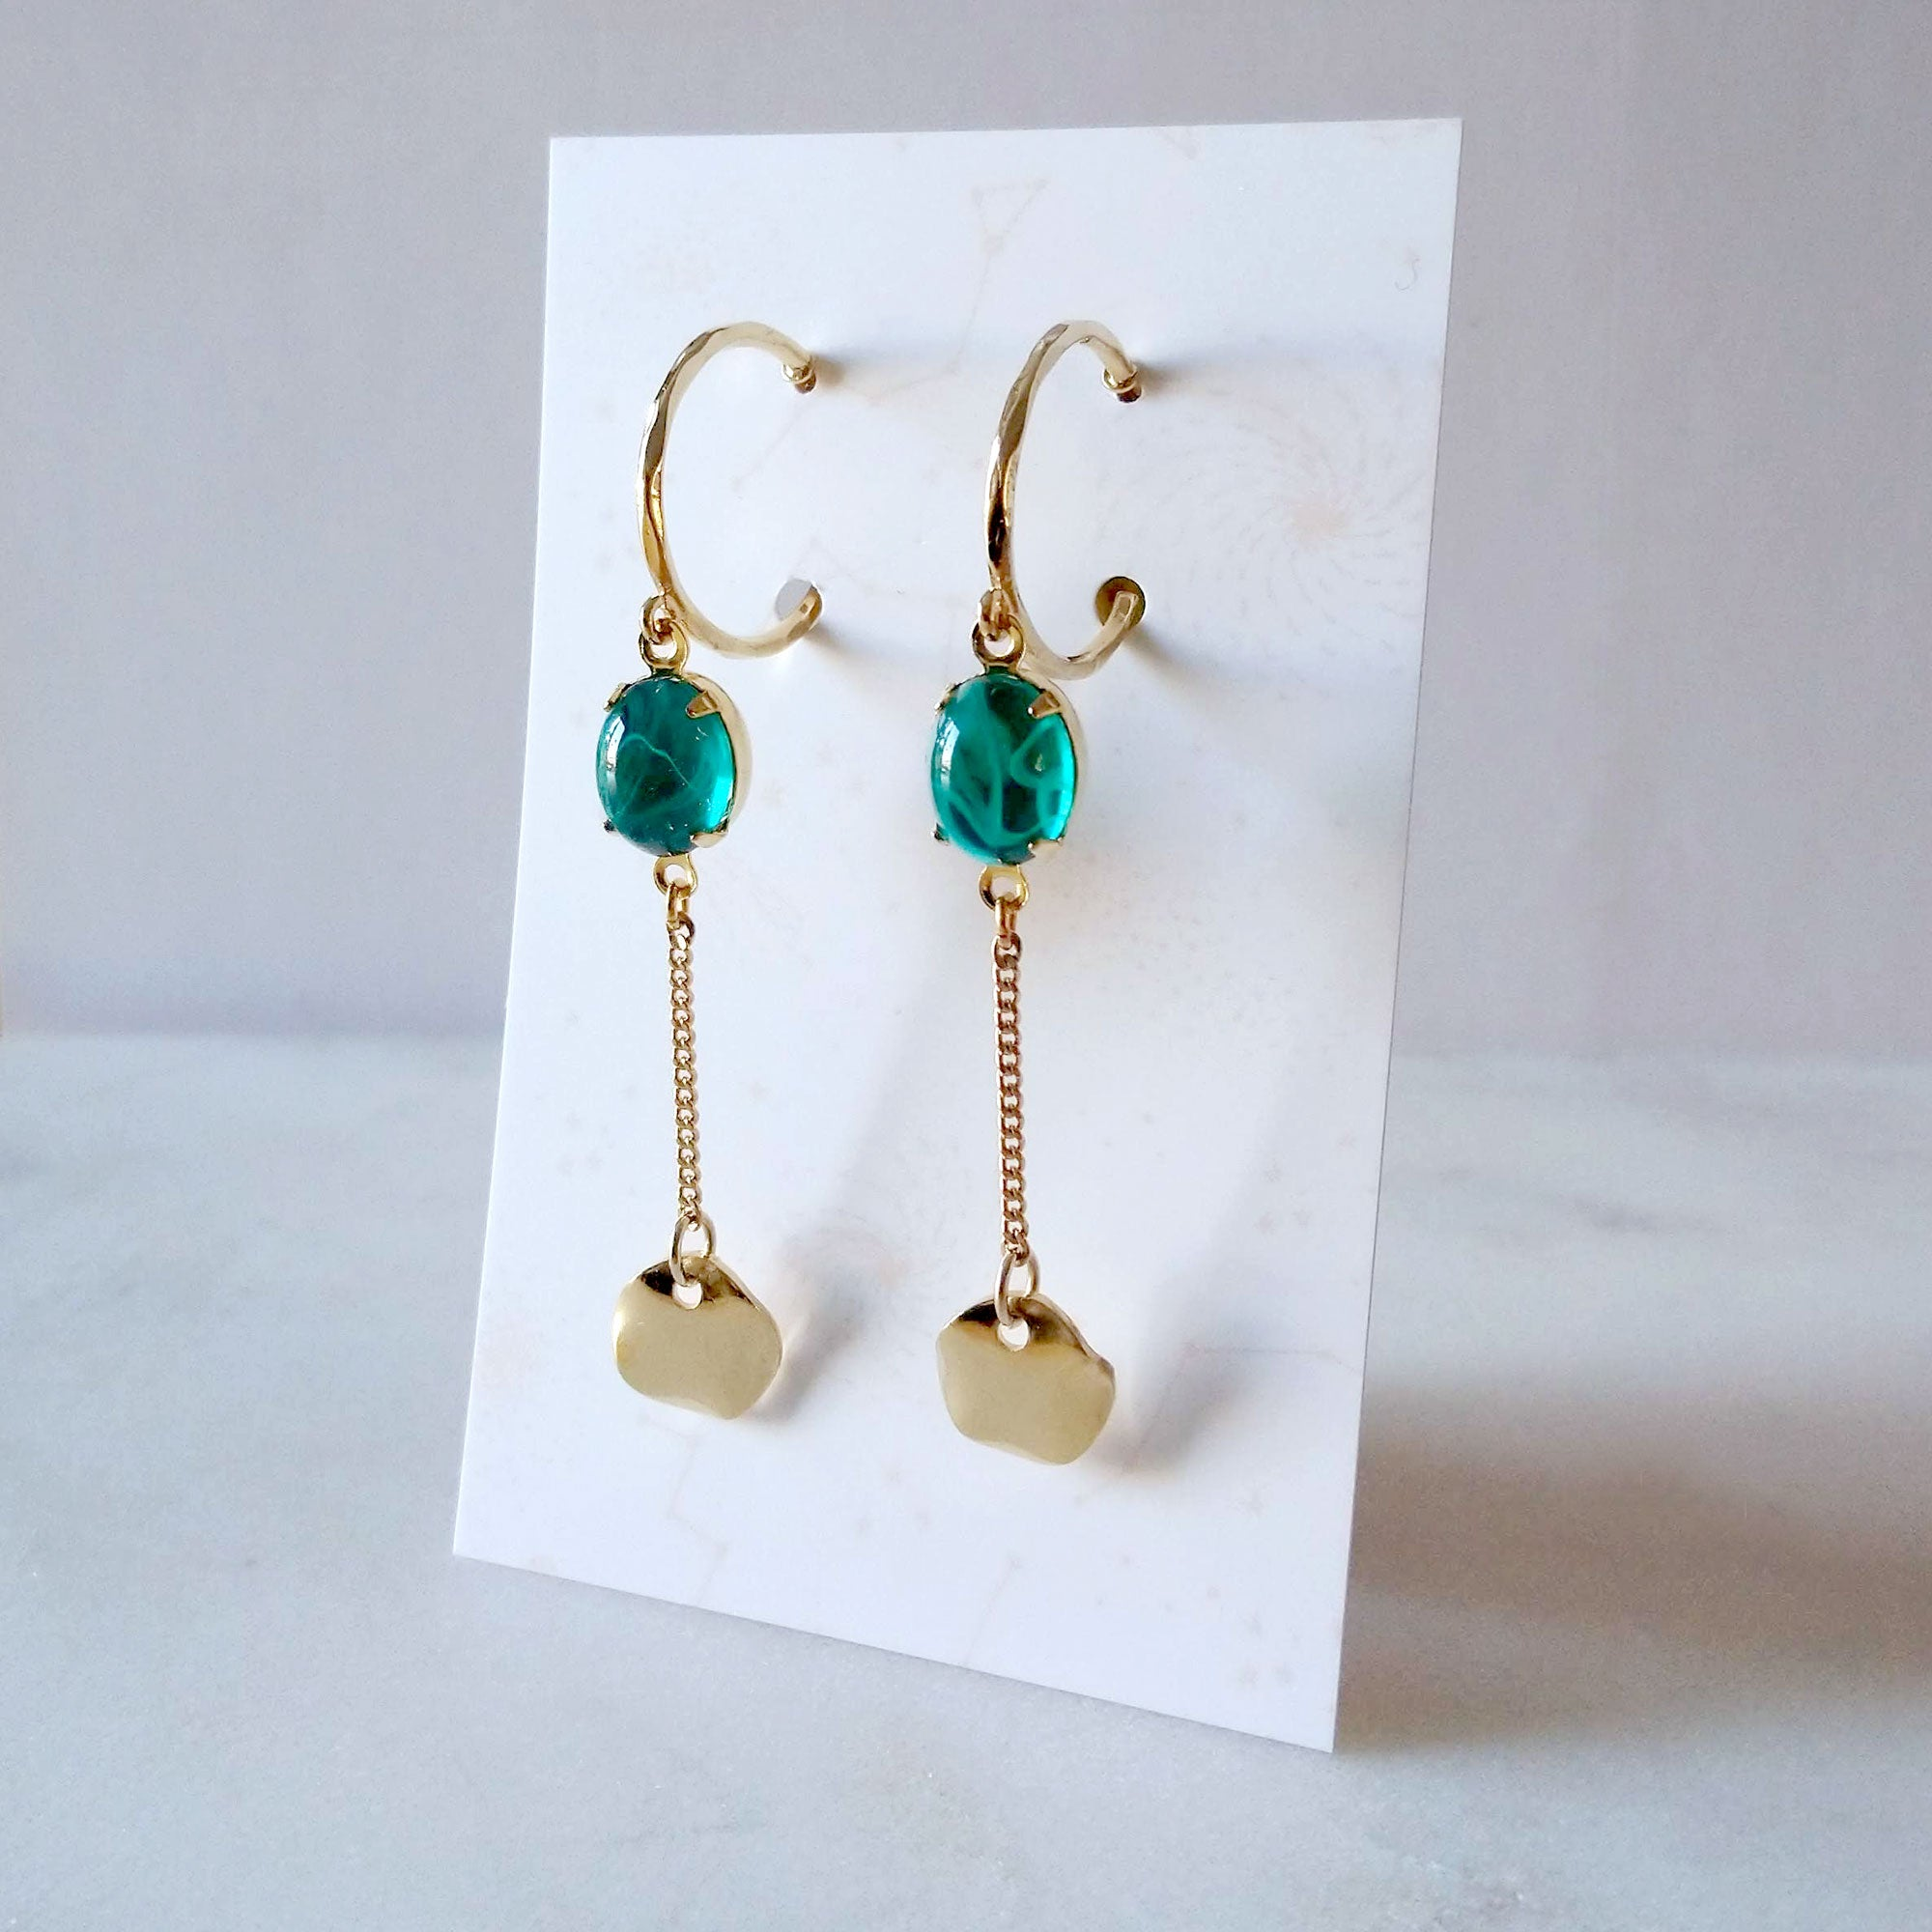 emerald green earrings golden hoops bijoux québécois anneaux or